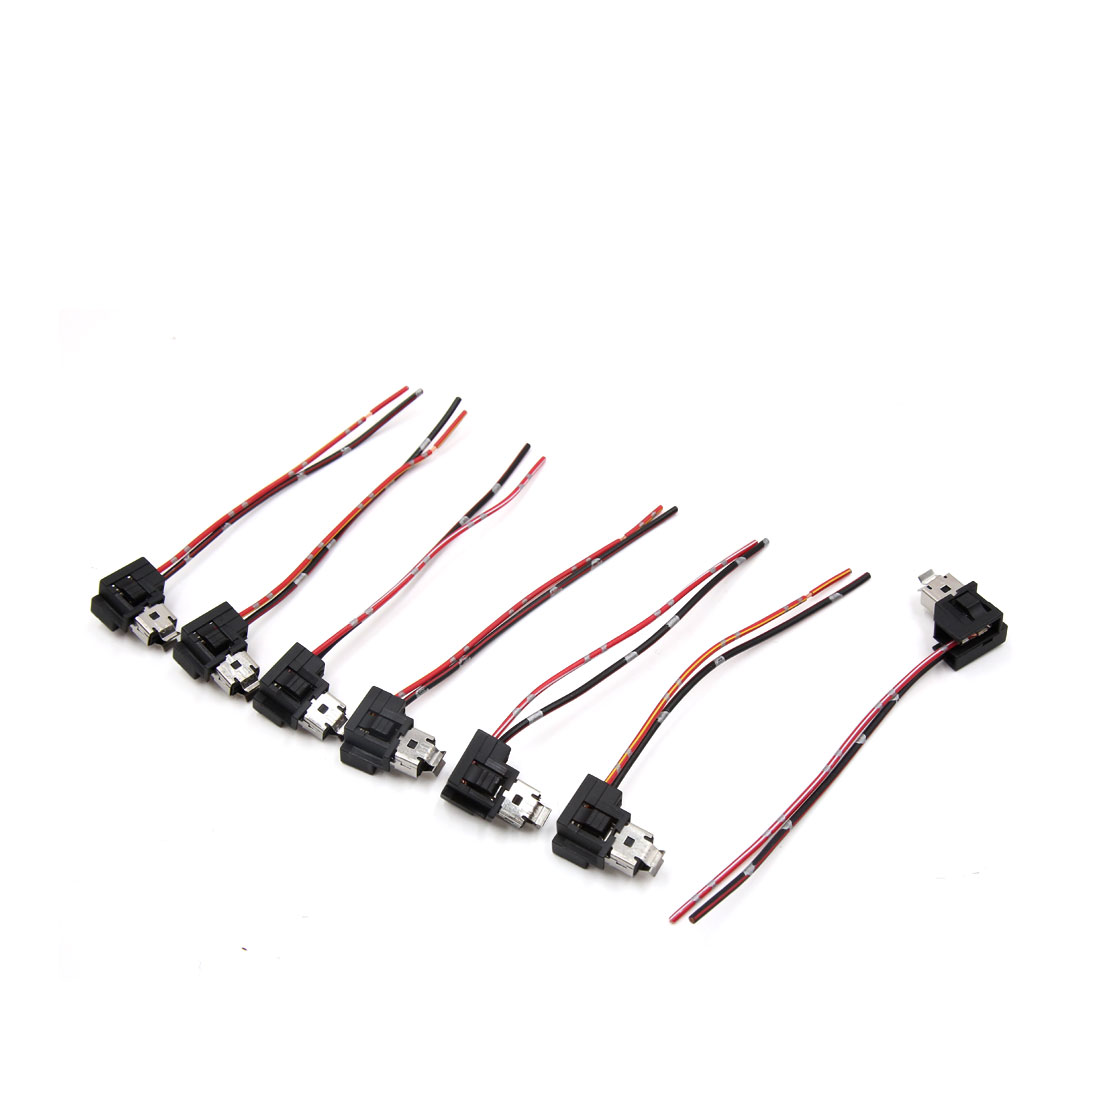 hight resolution of 7pcs h1 dc 12v car bulb holder light socket headlight connector wire harness